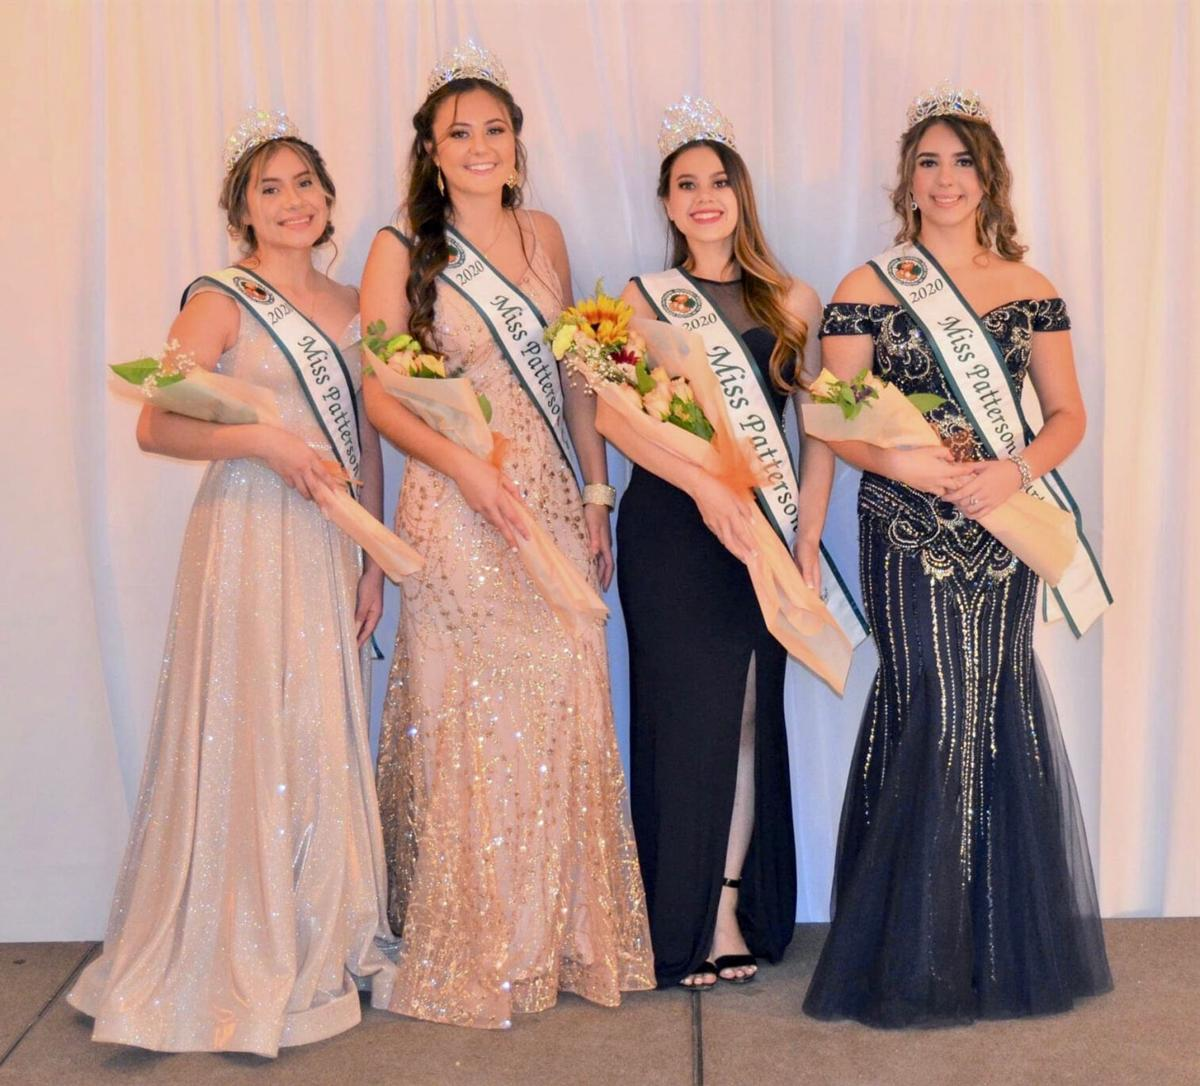 Carter crowned 2020 Miss Patterson